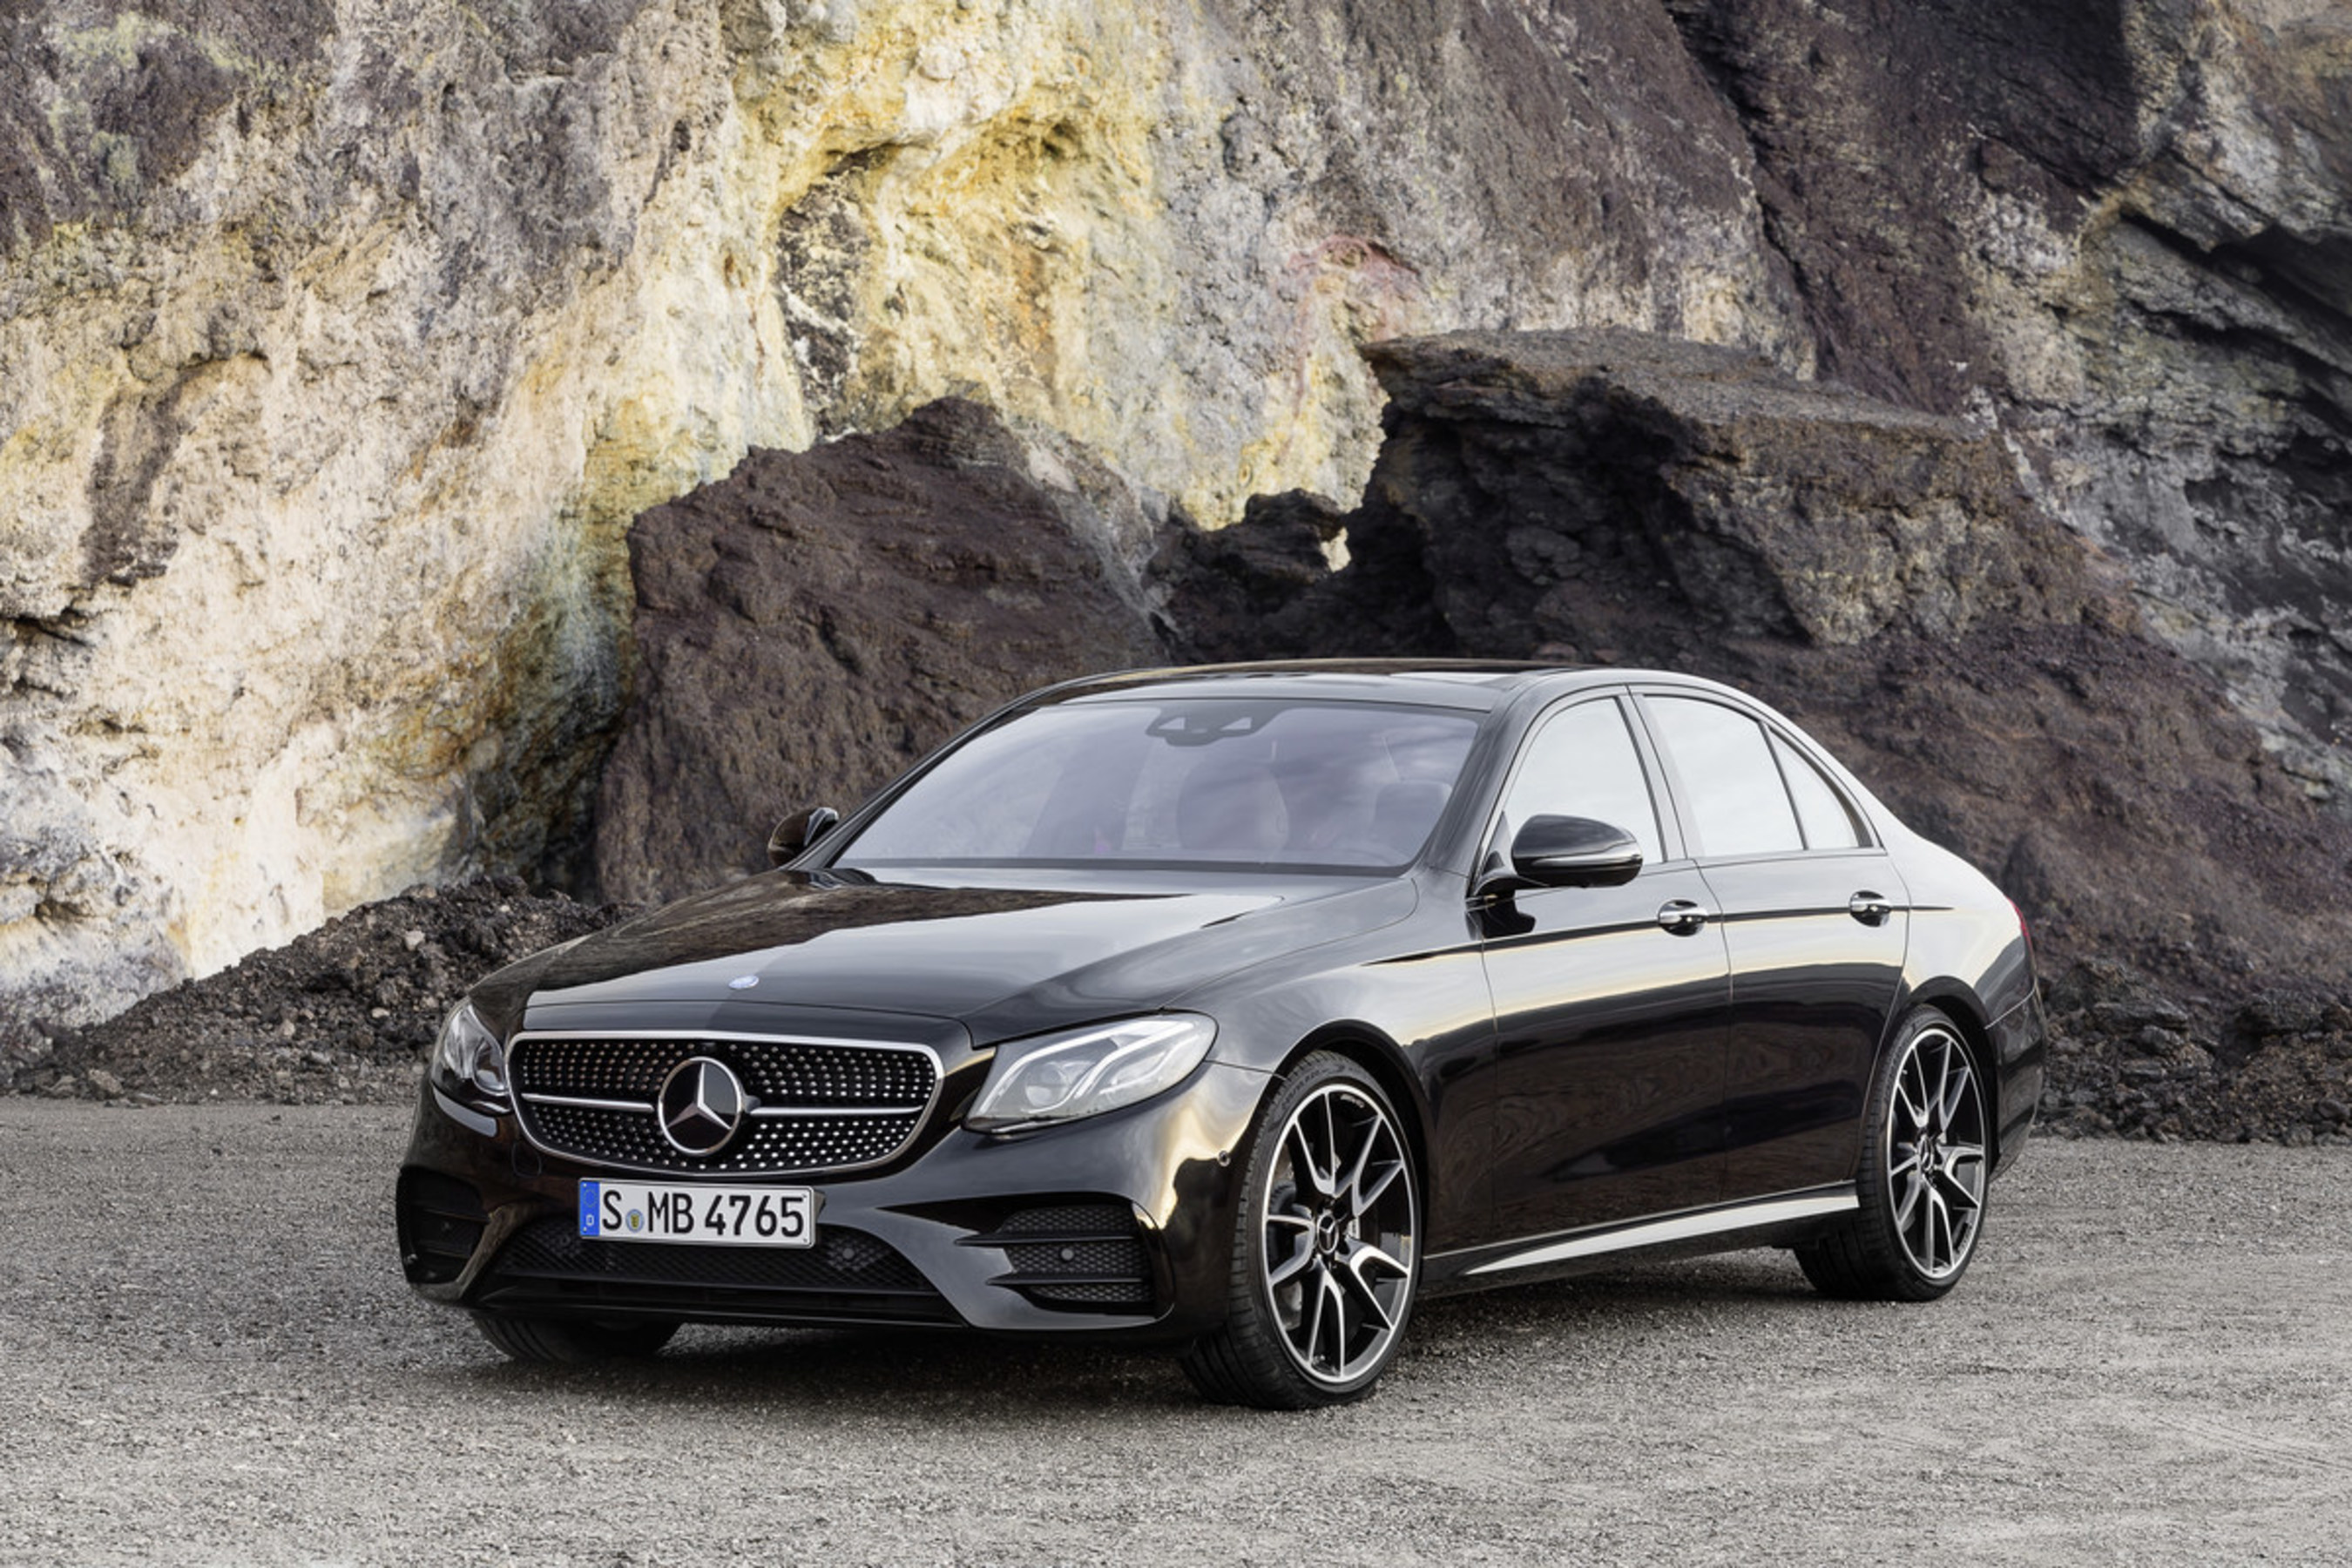 Mercedes-Benz of Scottsdale receives 2017 E-Class